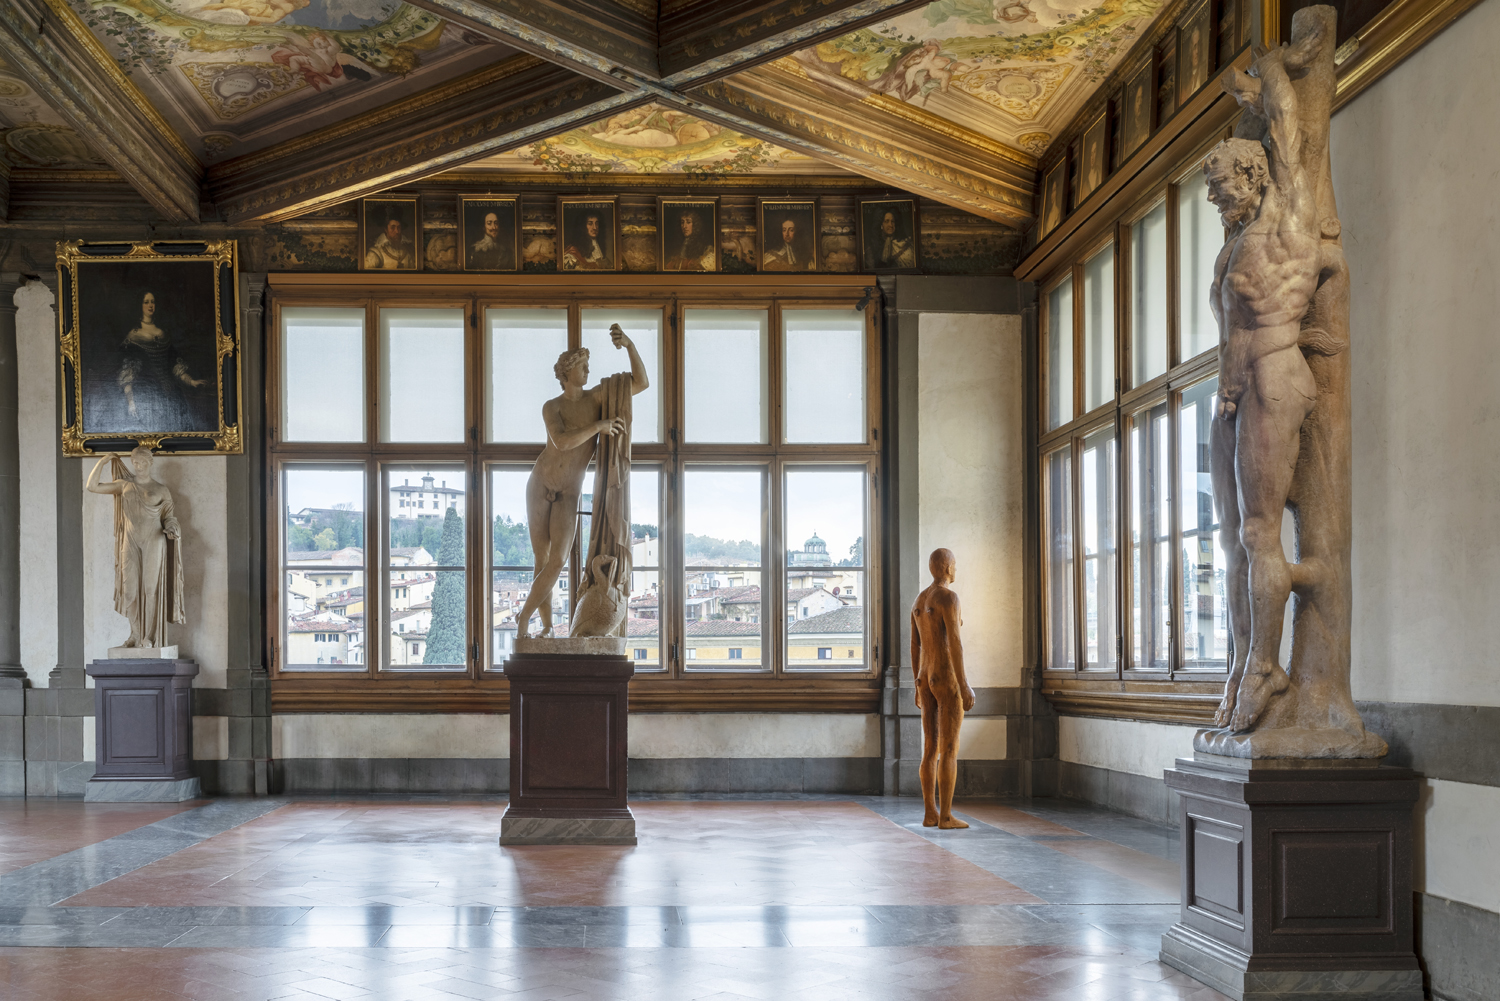 Gormely's works are displayed around the Uffizi in surprising locations!